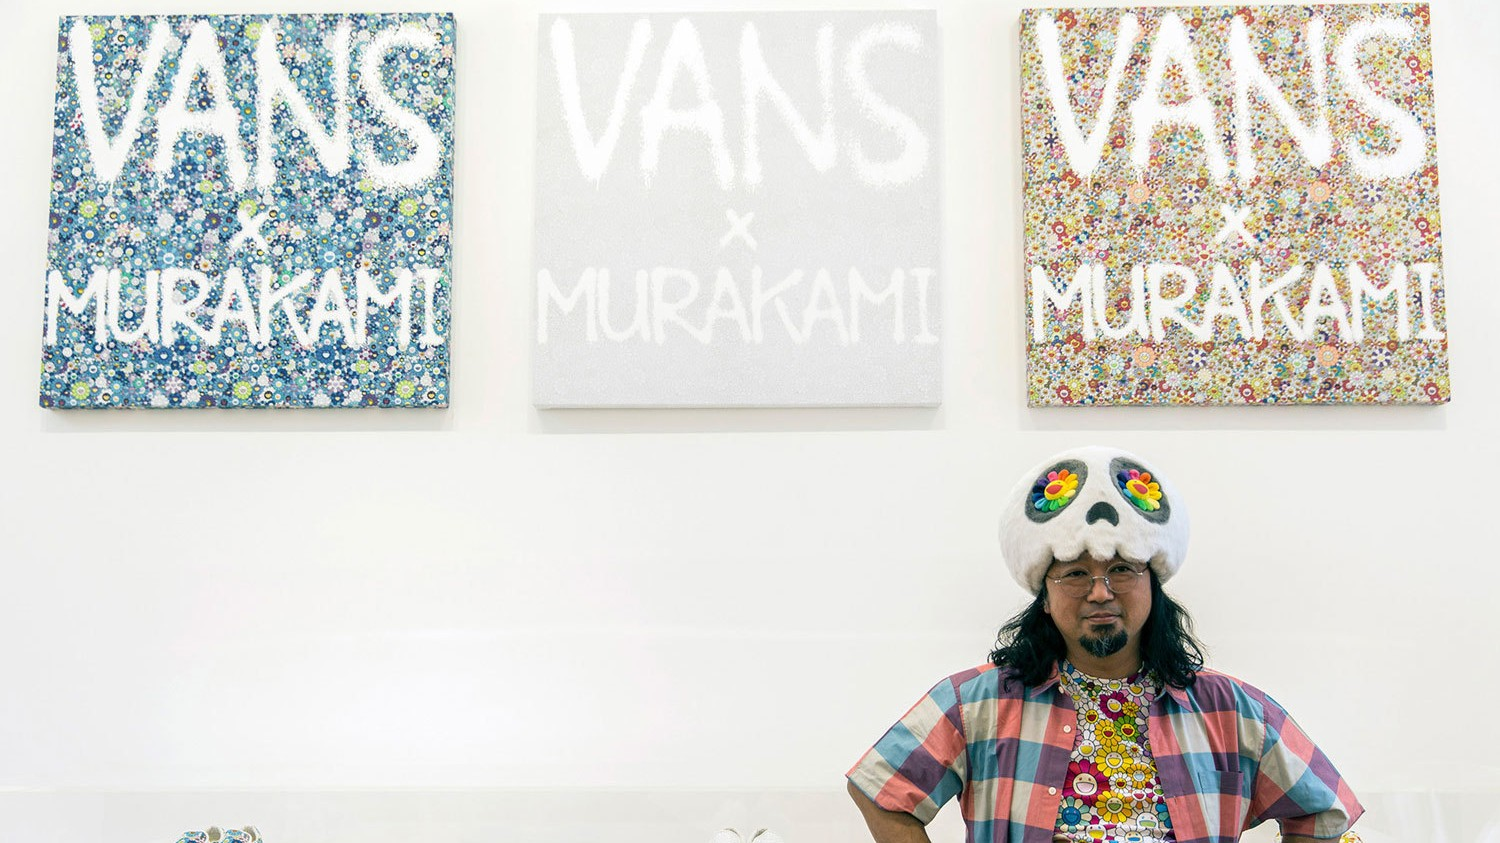 ​takashi murakami on vans, geeks and feeling spiritual